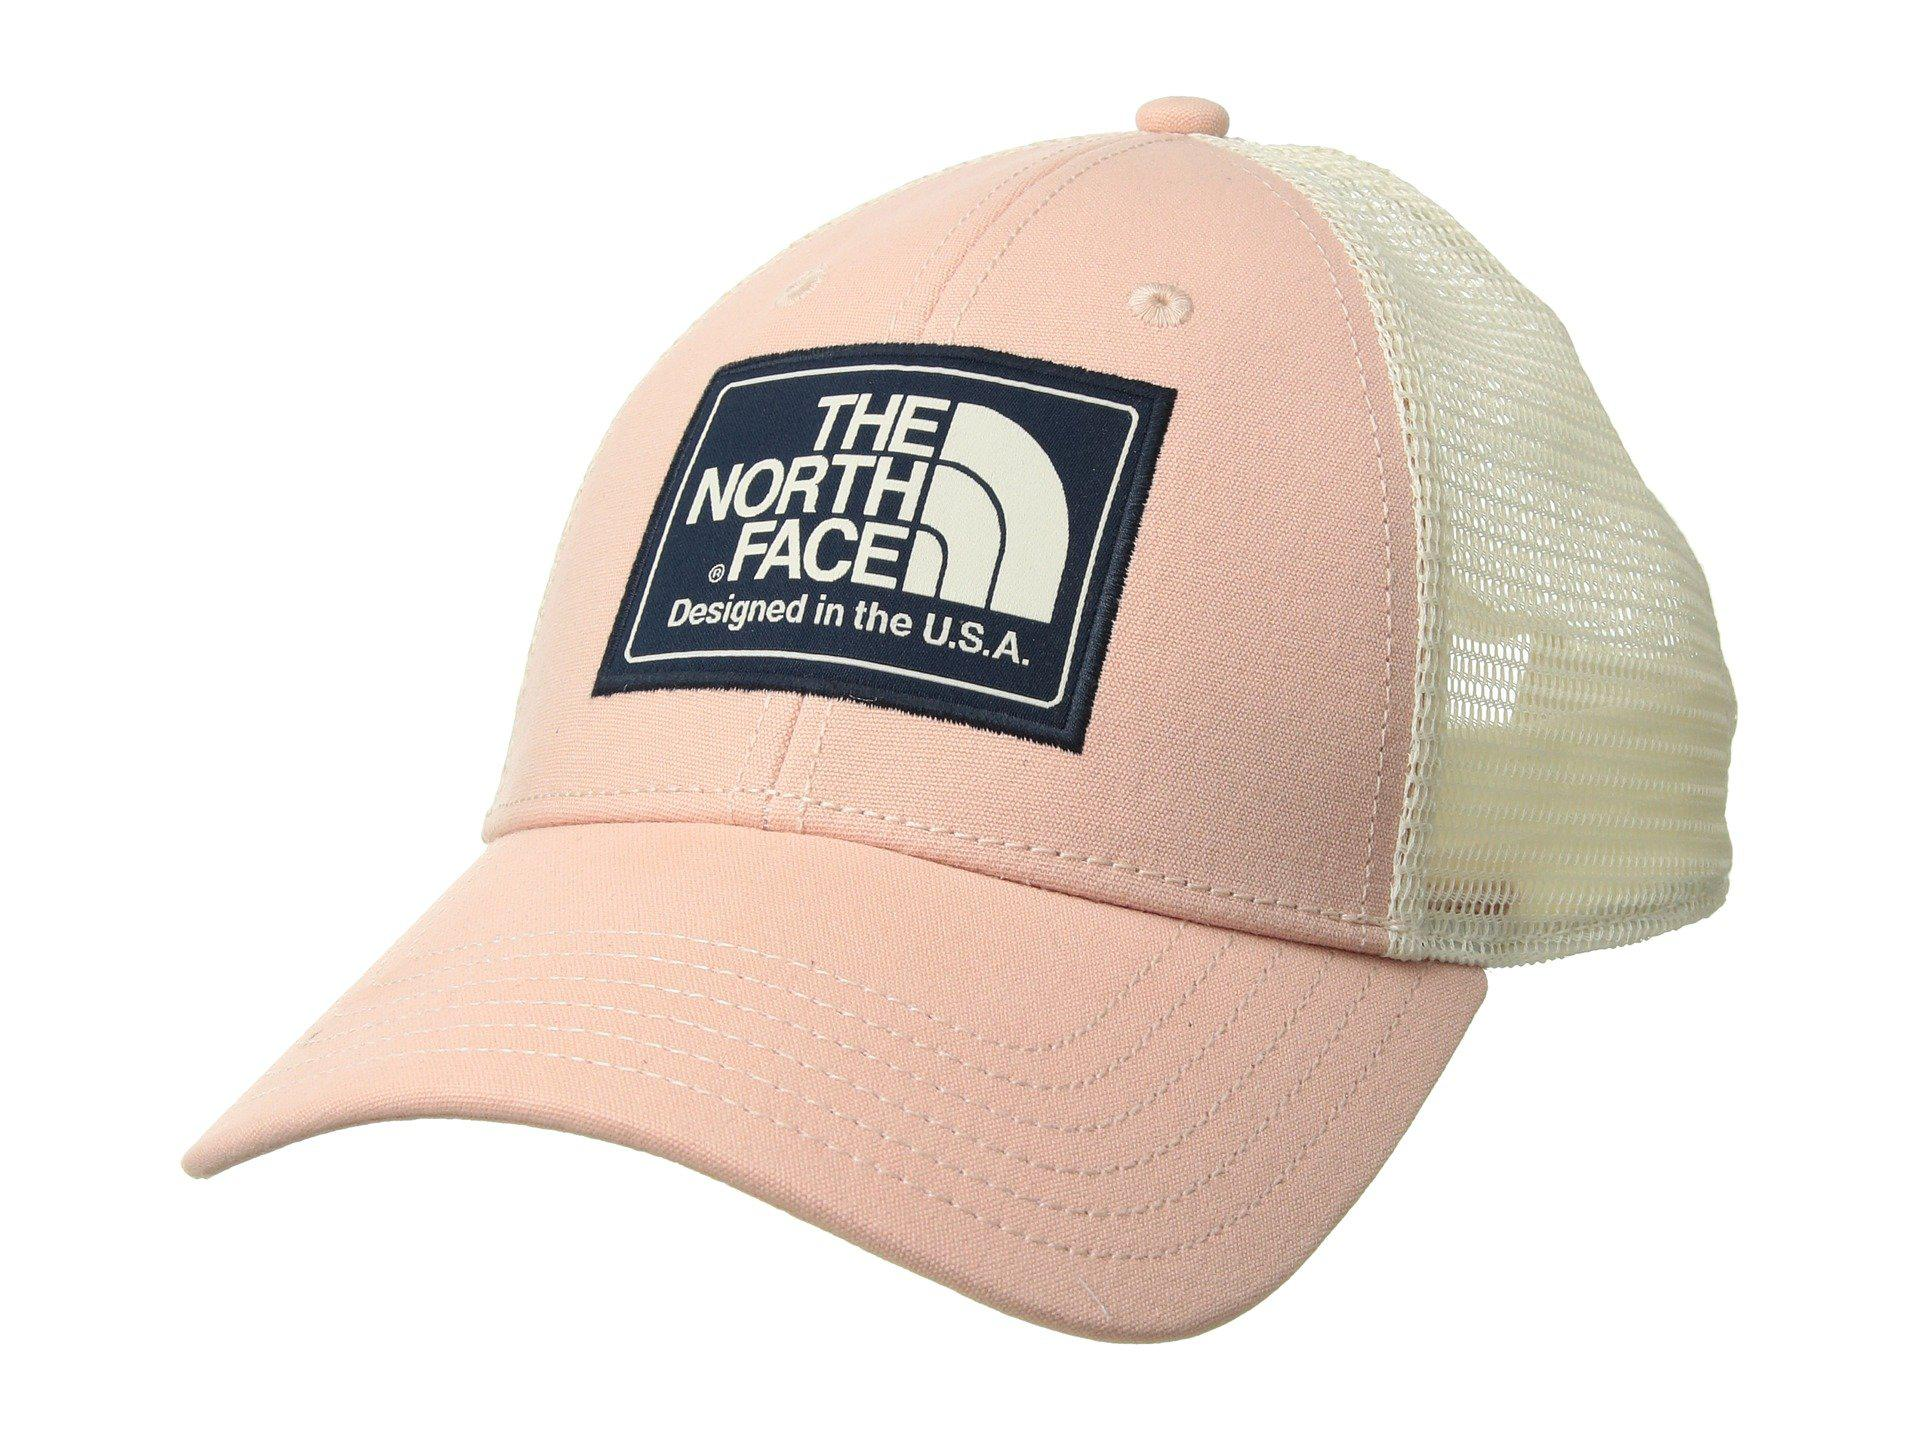 890d4c2adec Lyst - The North Face Mudder Trucker Hat for Men